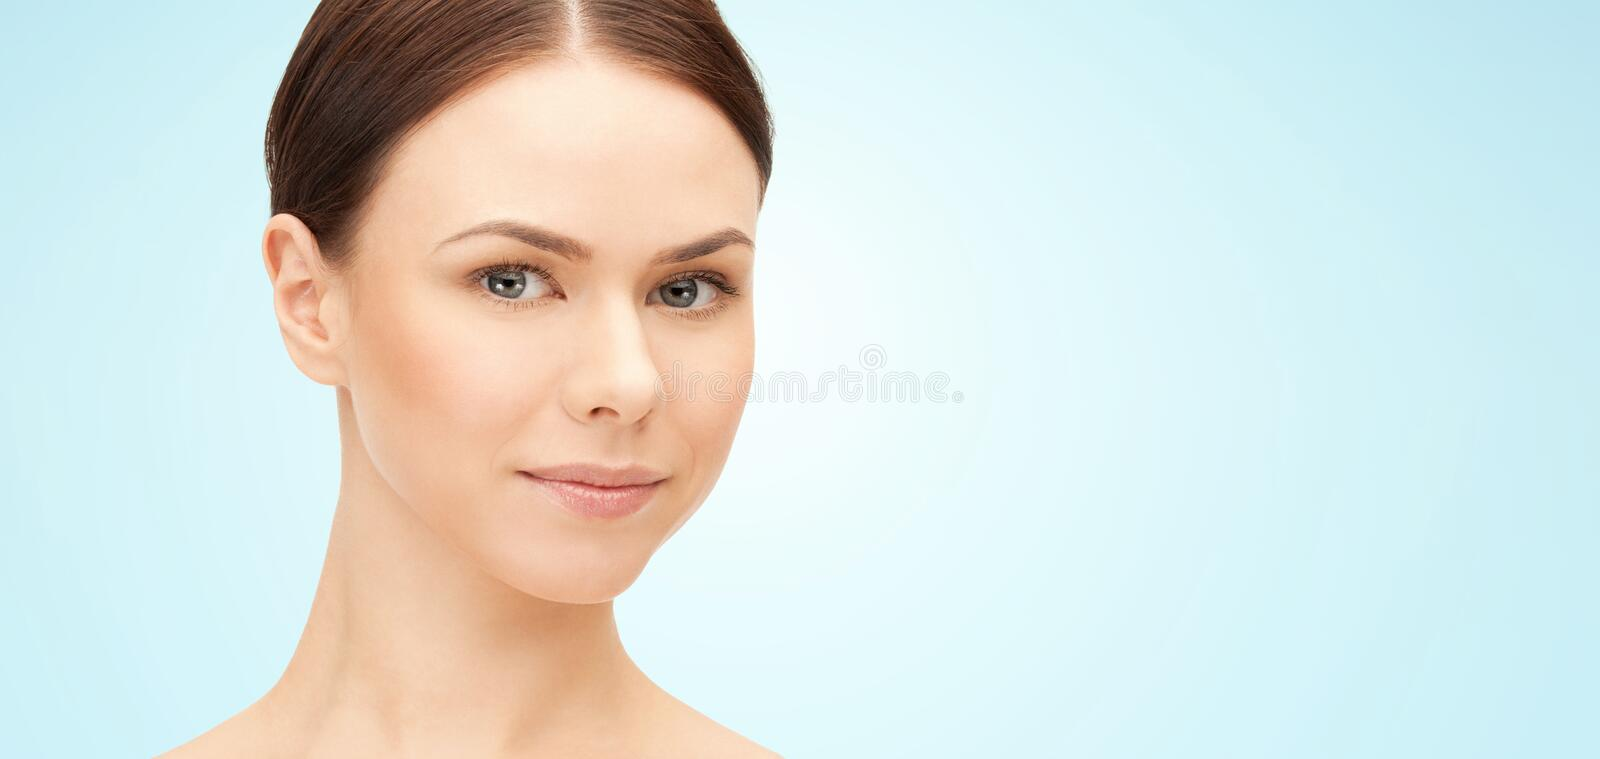 Face of beautiful woman over blue background royalty free stock photography